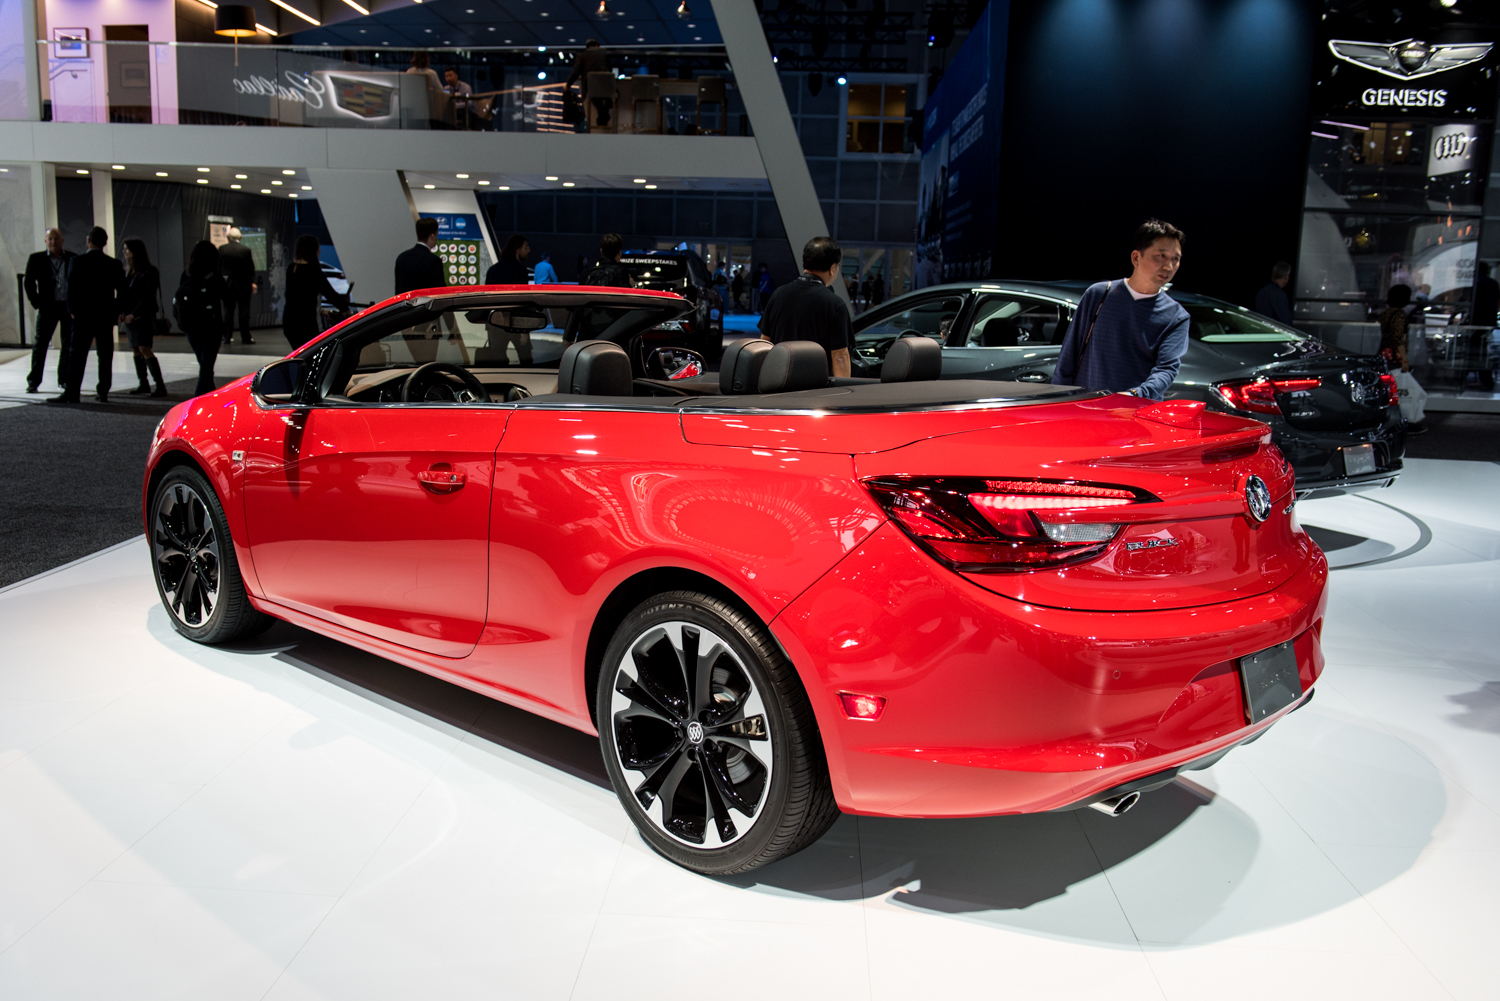 2019 Buick Cascada Info, Specs, Wiki | Gm Authority 2022 Buick Cascada Features, Gas Type, Hp